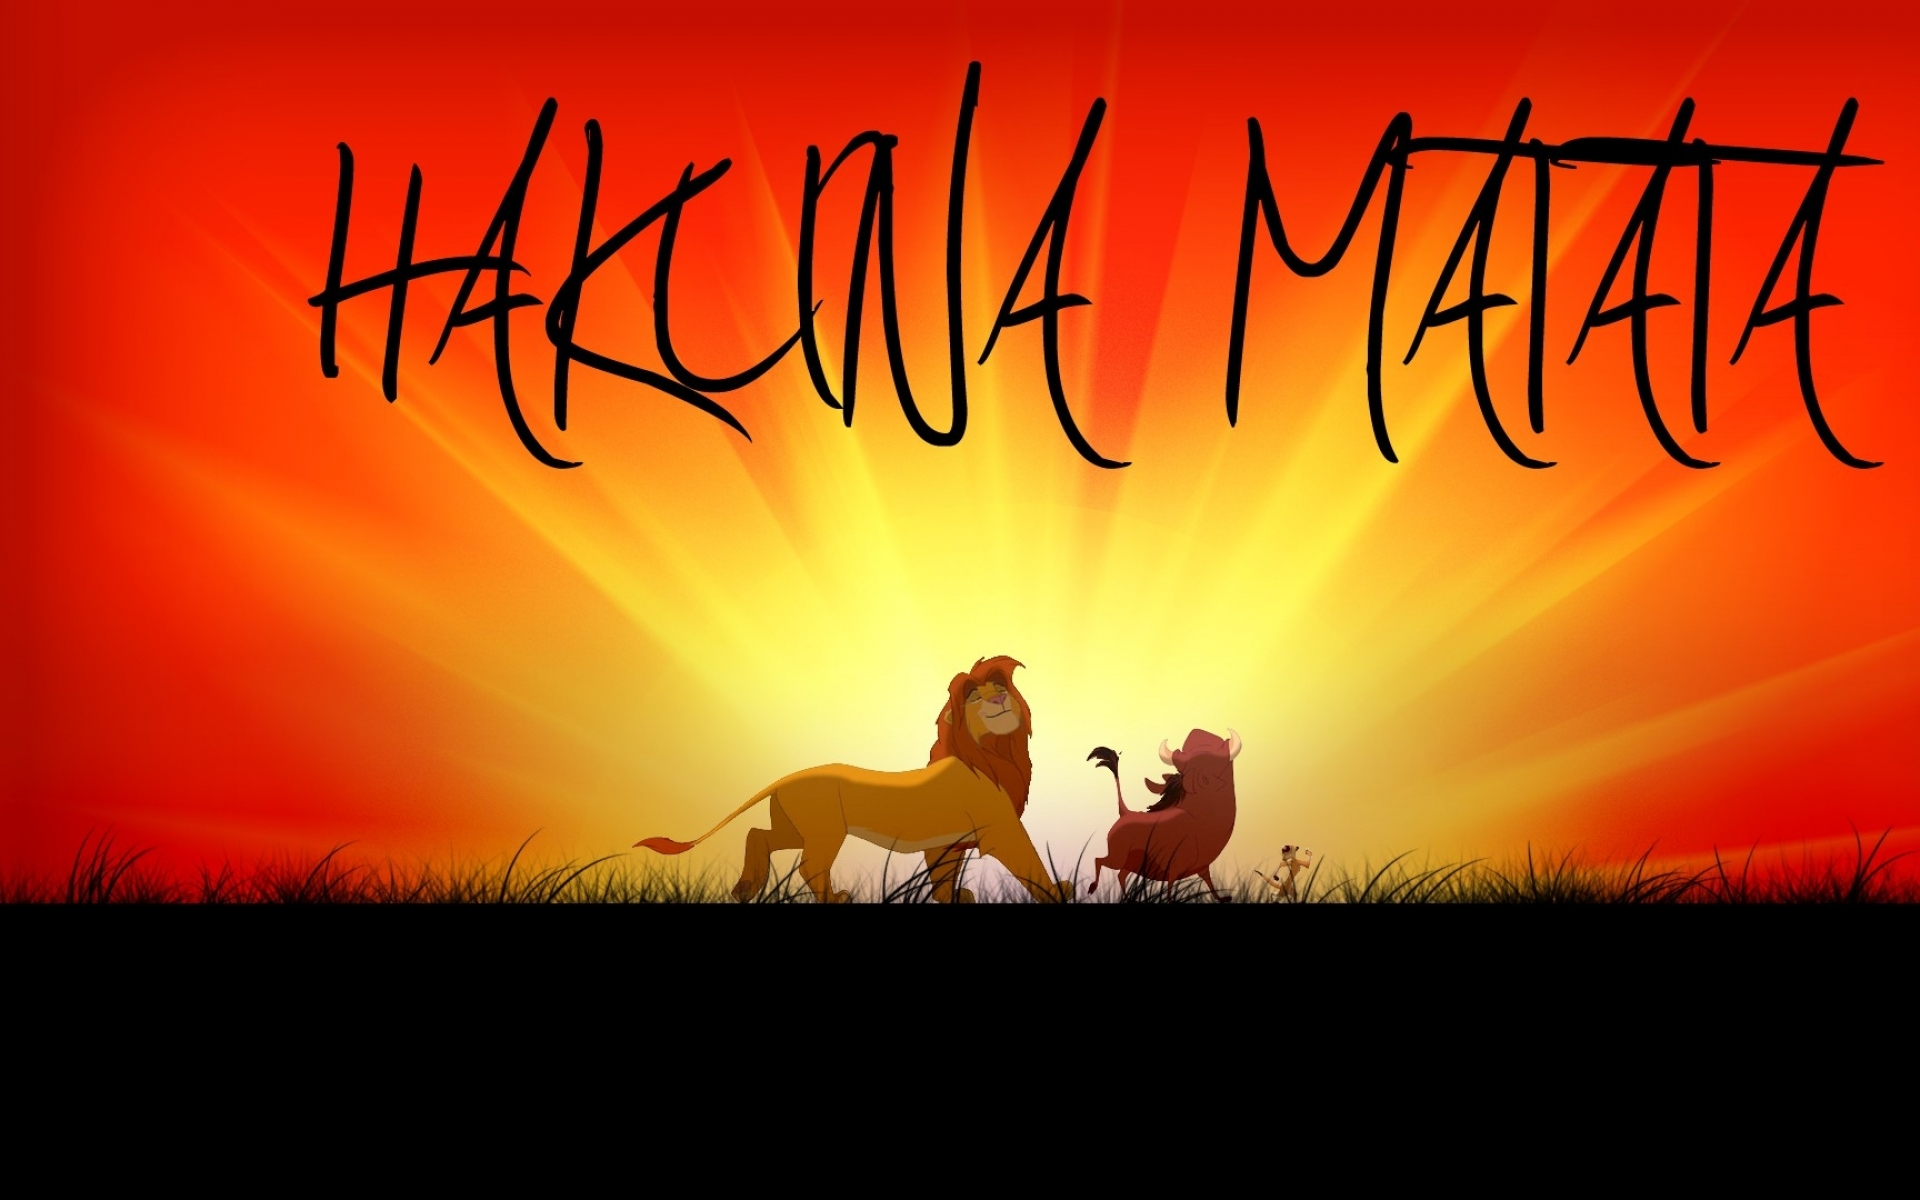 Lion King: Hakuna Matata HD Wallpaper